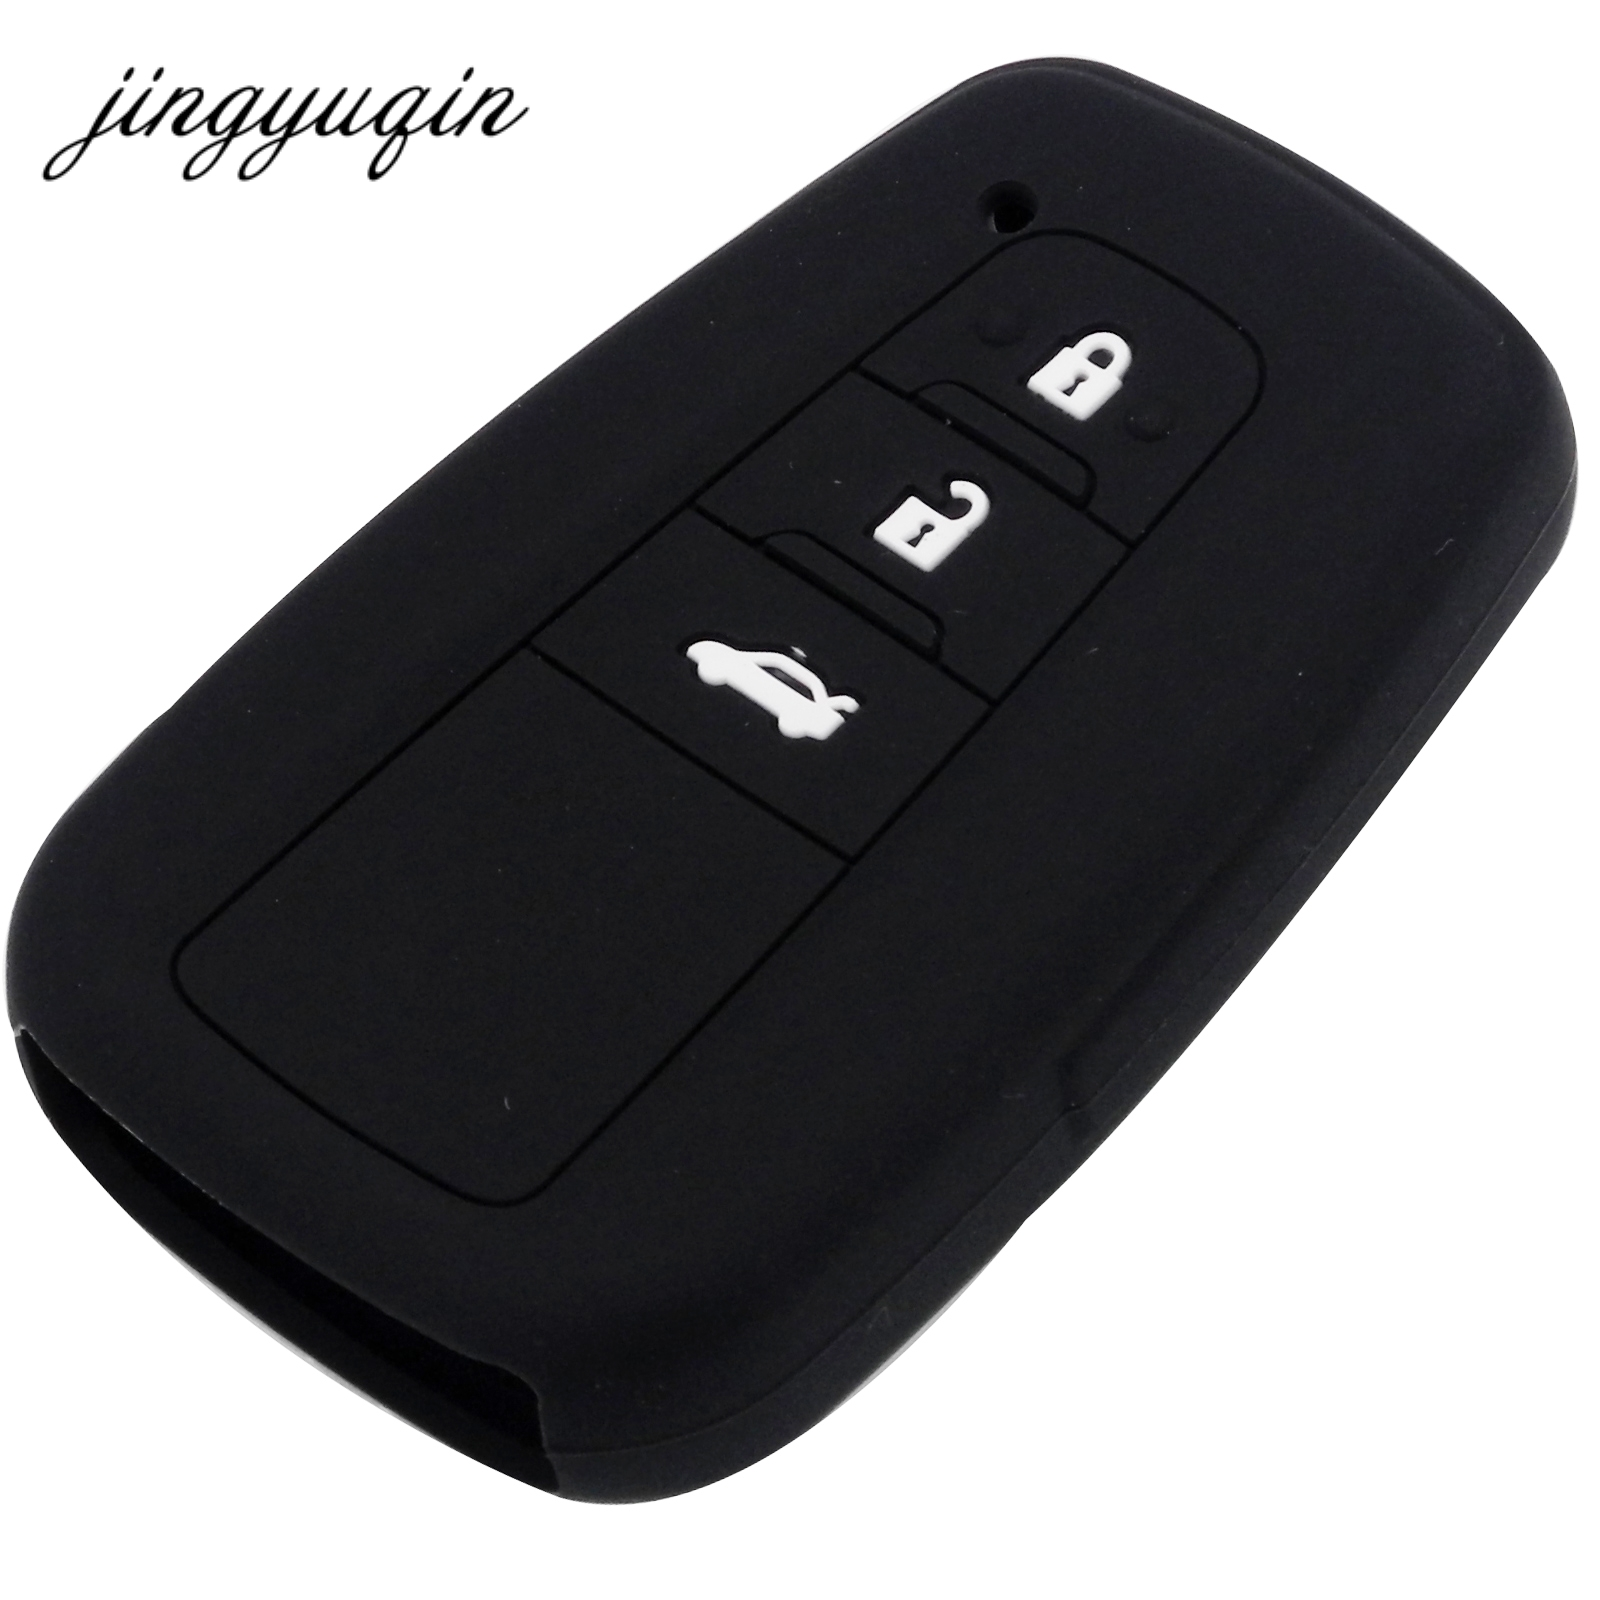 jingyuqin Skin Silicone Key fob Case for Toyota Camry 2017 2018 CHR Prius Corolla RAV4 Remote 3 Button Keyless Cover Protect литой диск replikey rk l18b toyota rav4 camry 7x17 5x114 3 d60 1 et45 s